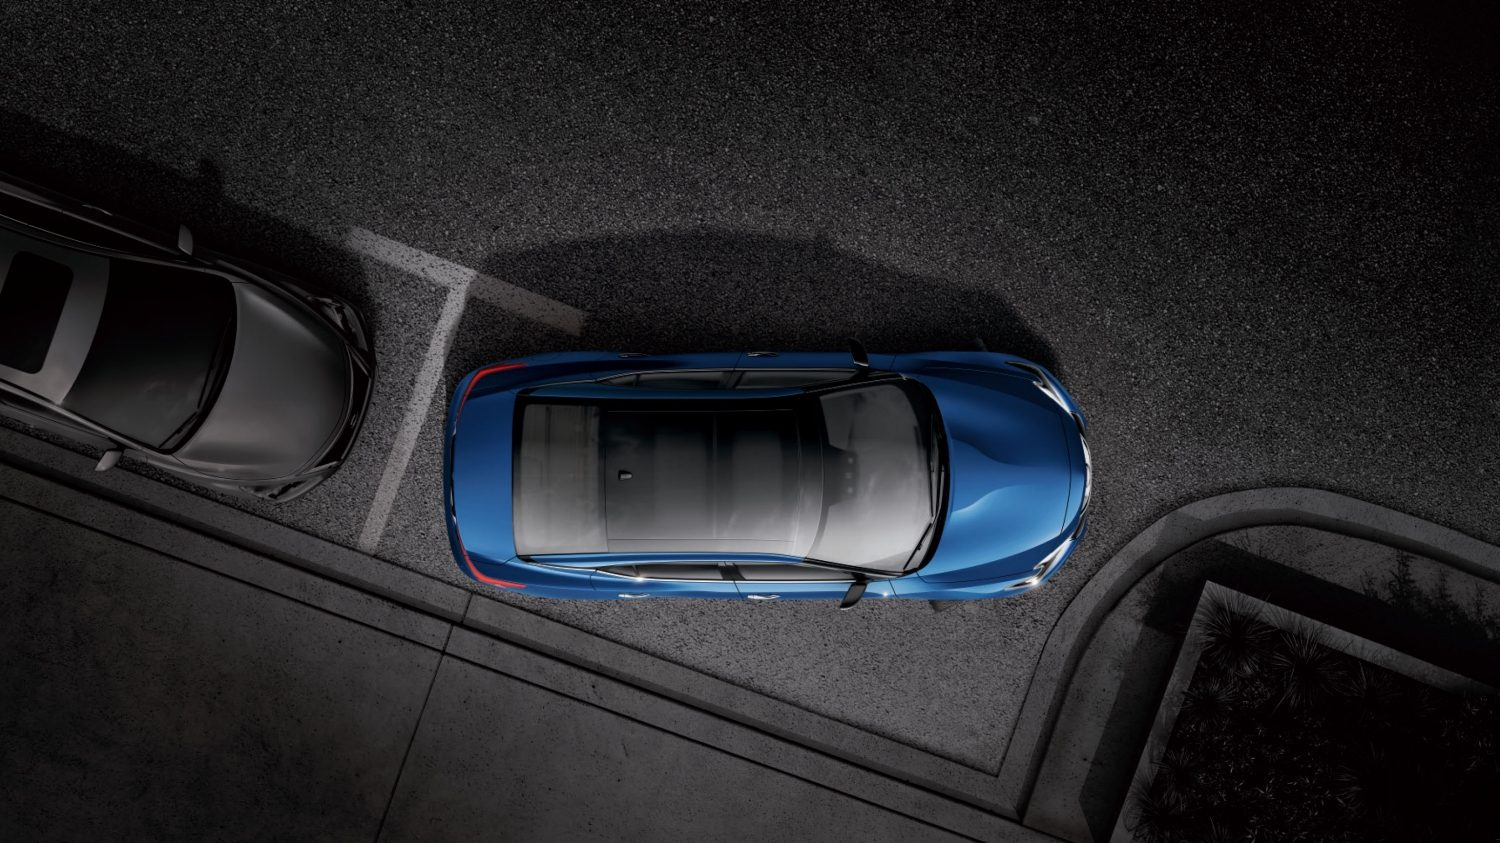 Overhead Shot of Vehicle Parallel Parking